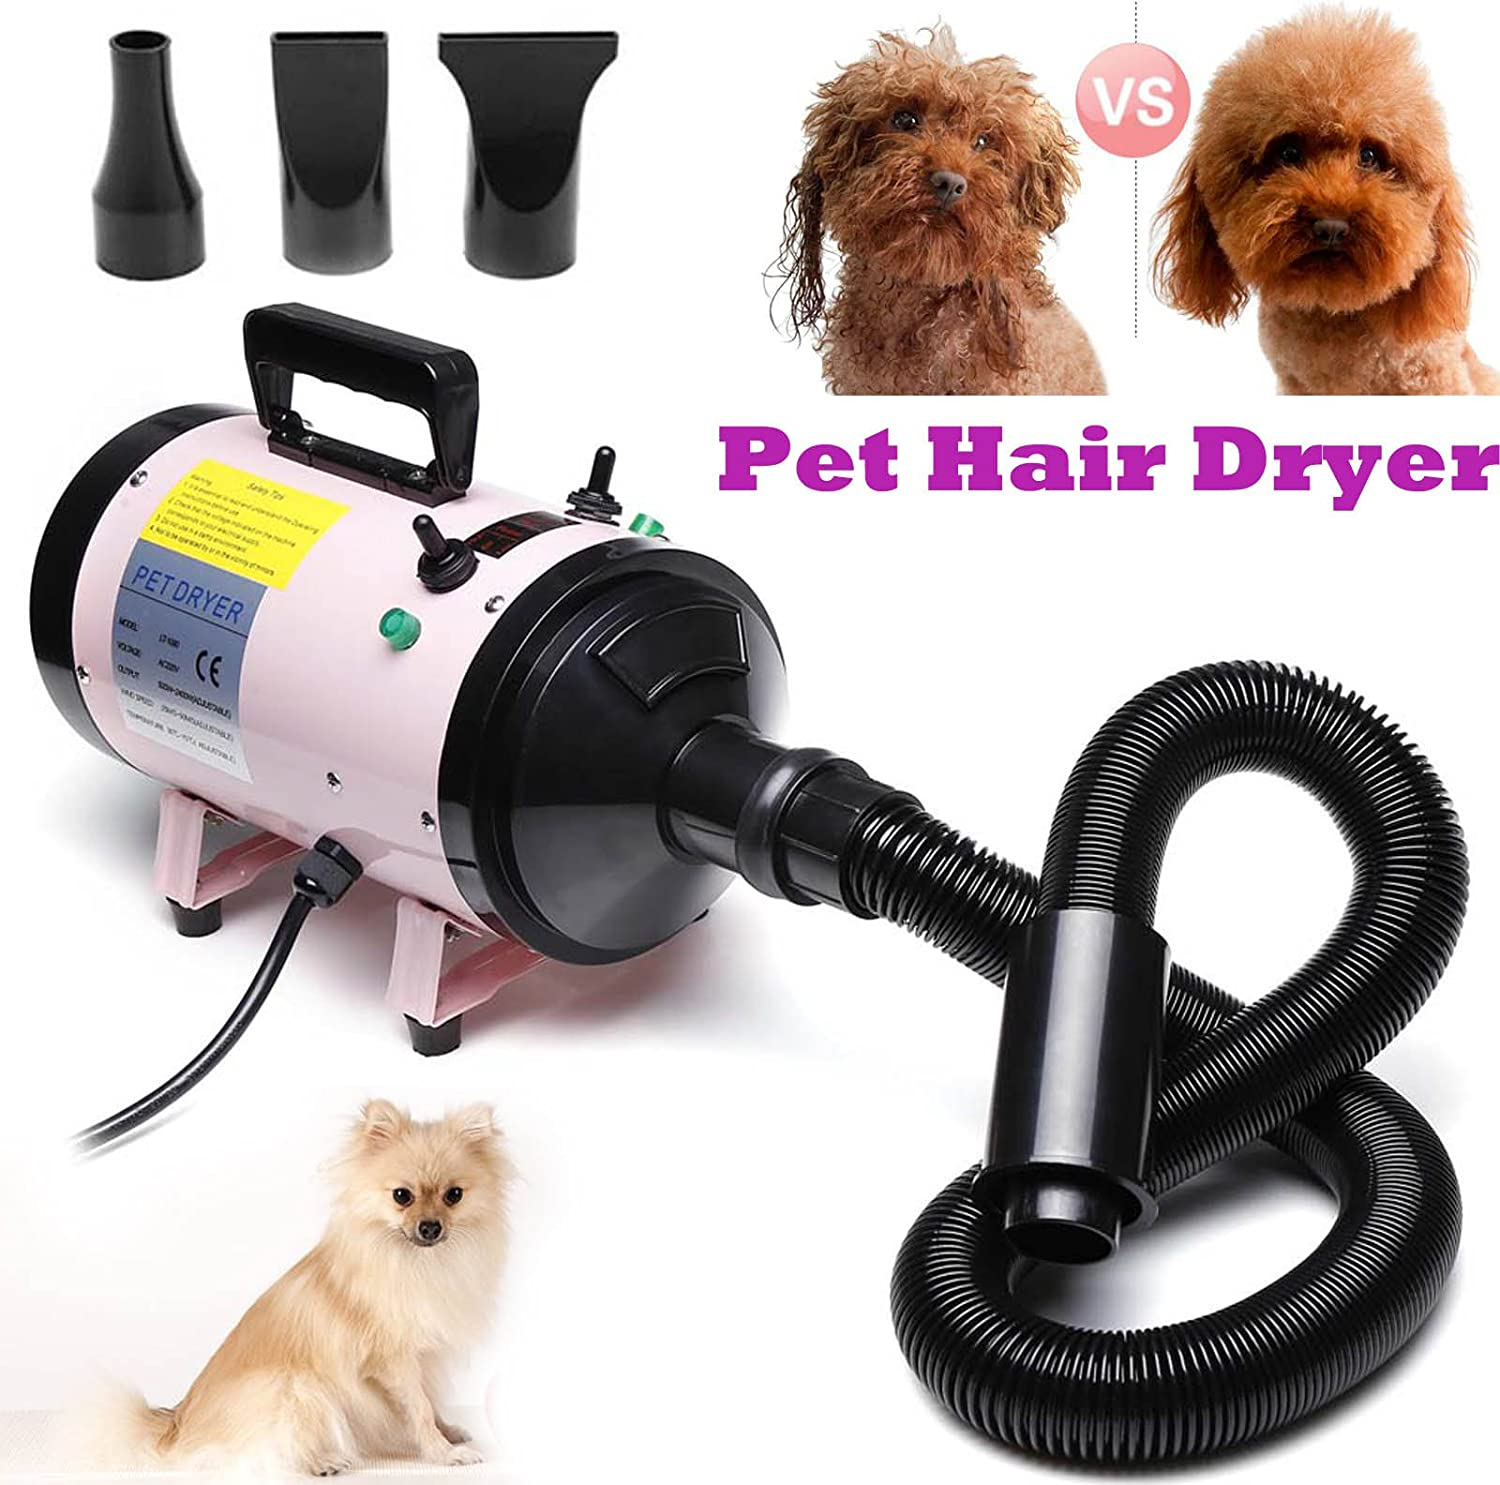 Autofather 2800W Dog Cat Pet Professional Grooming Hair Dryer with 3 Nozzles 2.5M Flexible Hose 2Stage Speed Adjustable Temperature, 2 Year Warranty